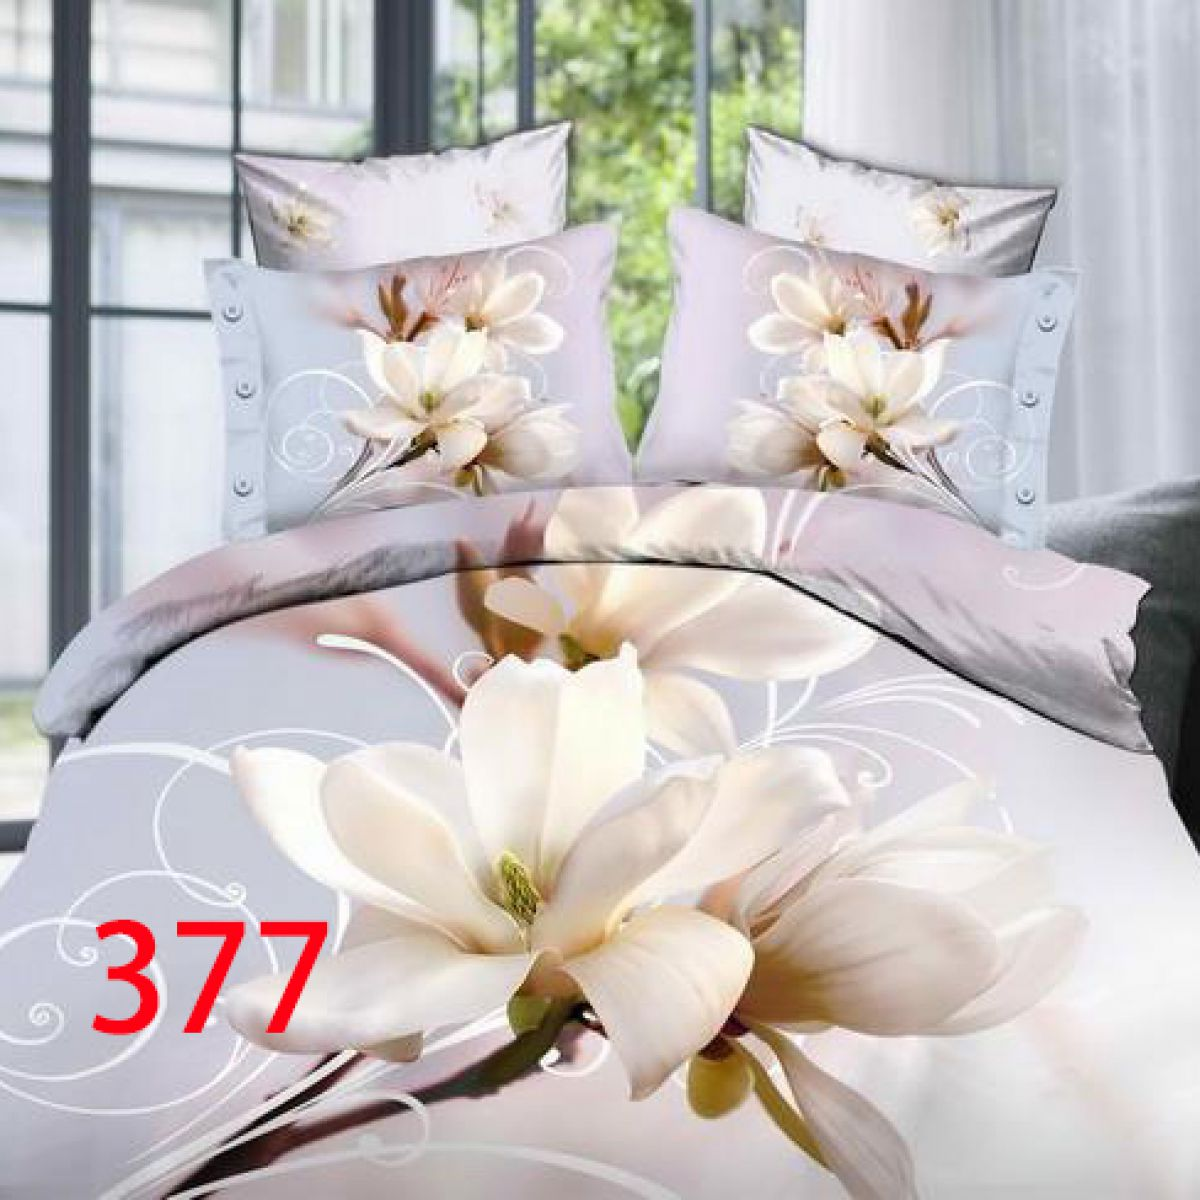 3D Beddings - Antonio - AML-377 - 160x200 cm - 4 pcs